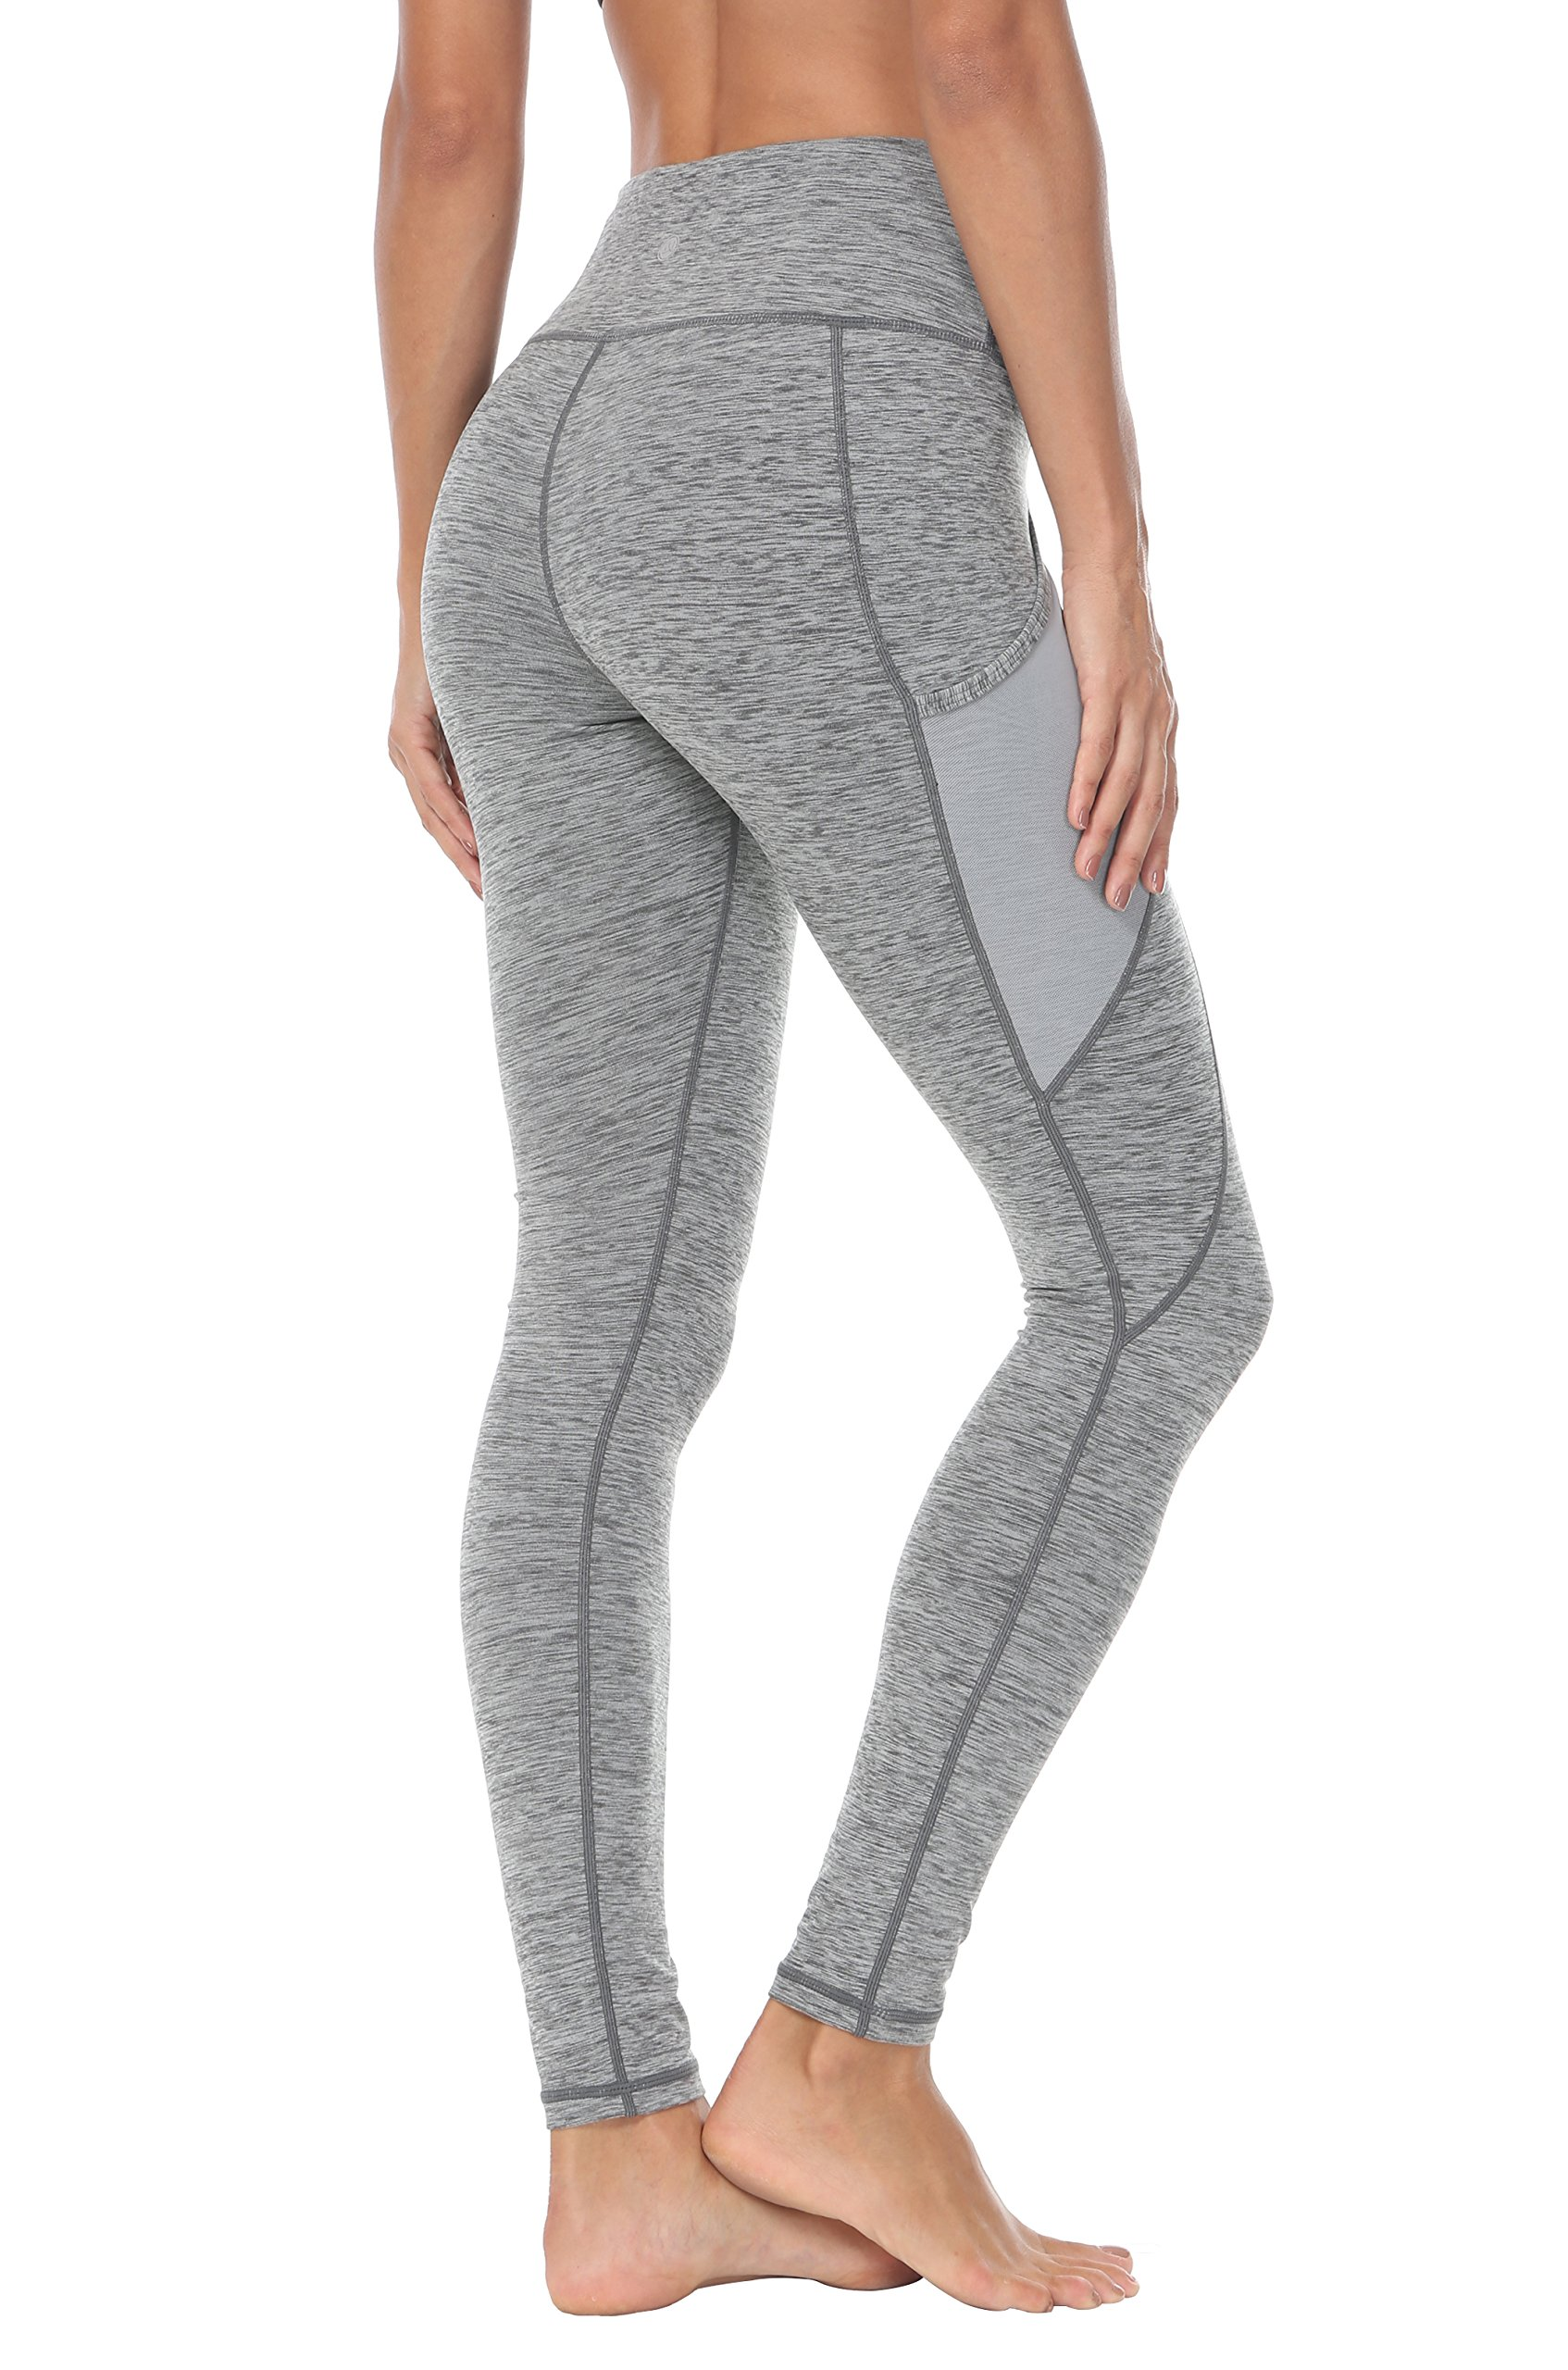 110de083348ee Queenie Ke Women Yoga Leggings Power Flex Mesh Mid-Waist 3 Phone Pocket Gym  Running